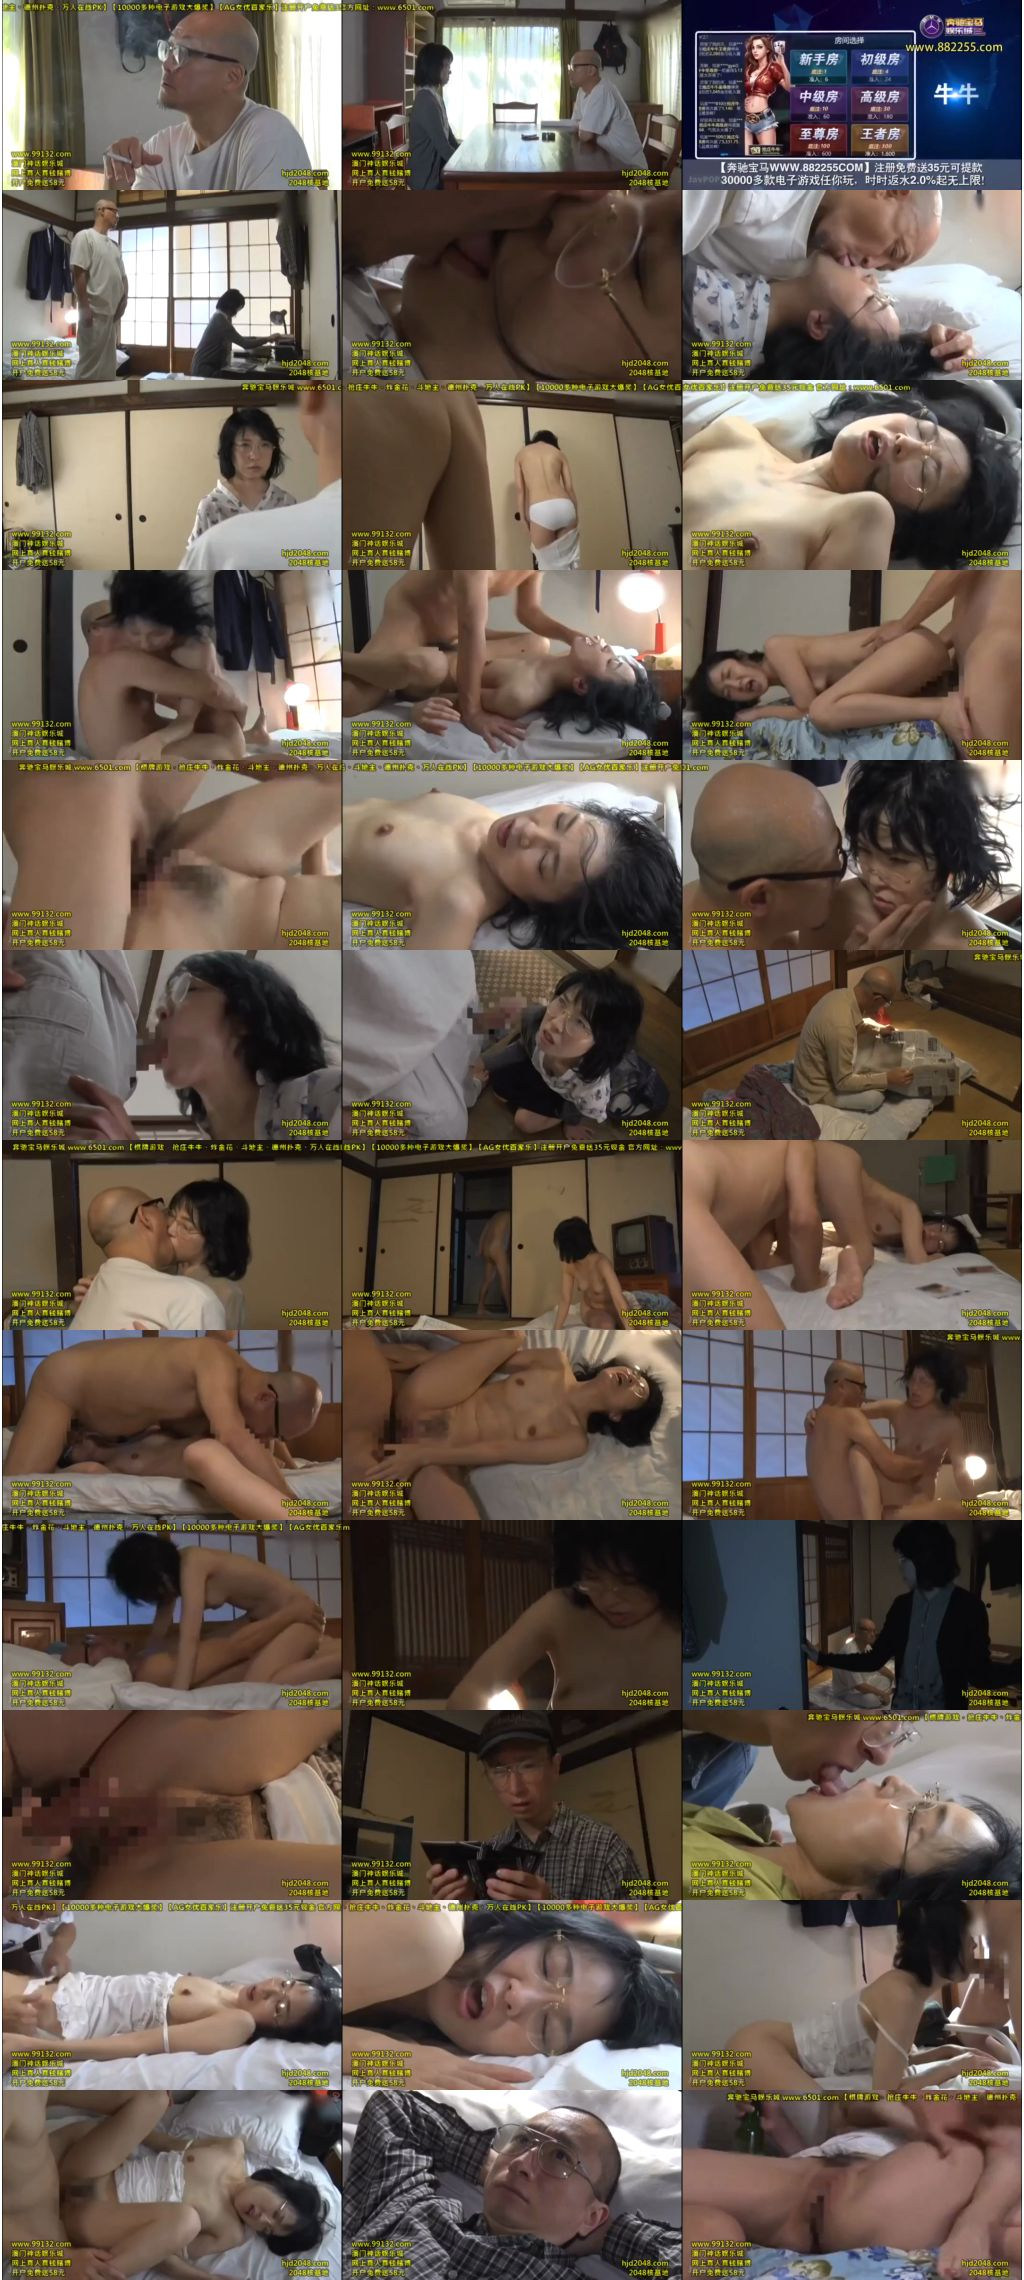 [HOKS-009] 犯された女教師 地獄の家庭訪問 早川りょう Drama Solowork Anaconda Anarchy  Hardcore Married Woman